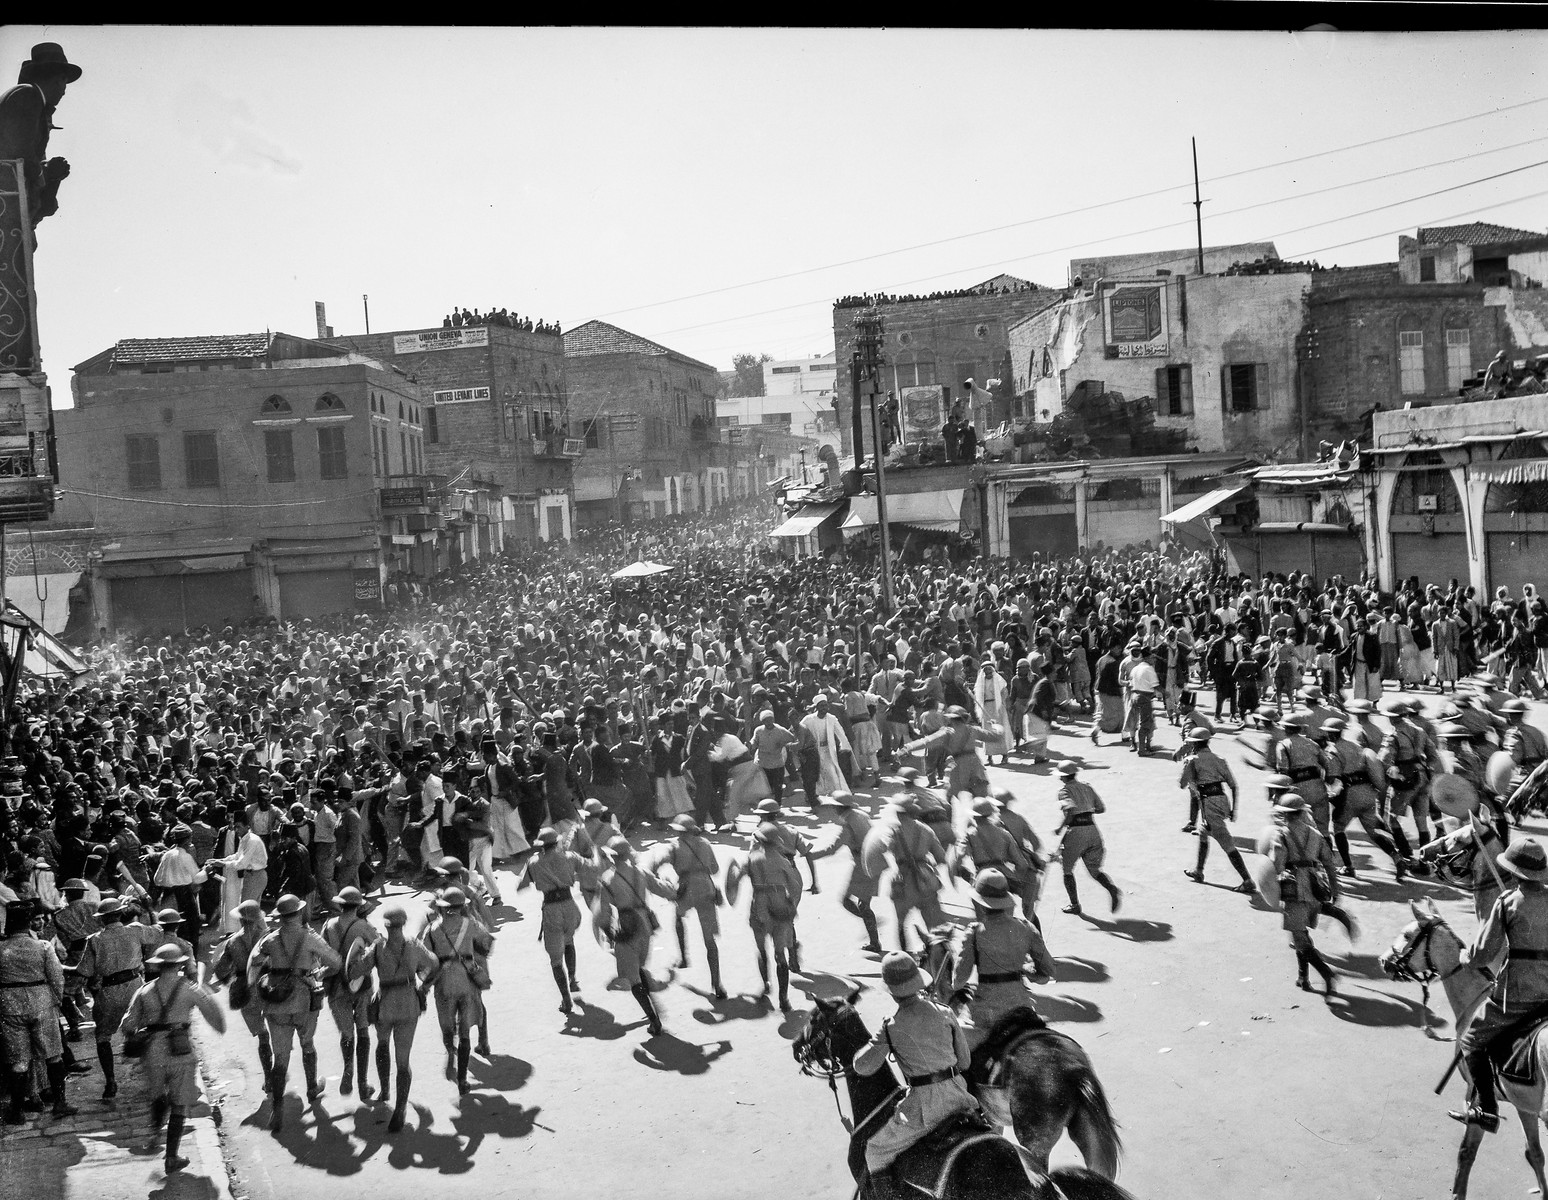 Arab protest delegations, demonstrations and strikes against British policy in Palestine in 1933